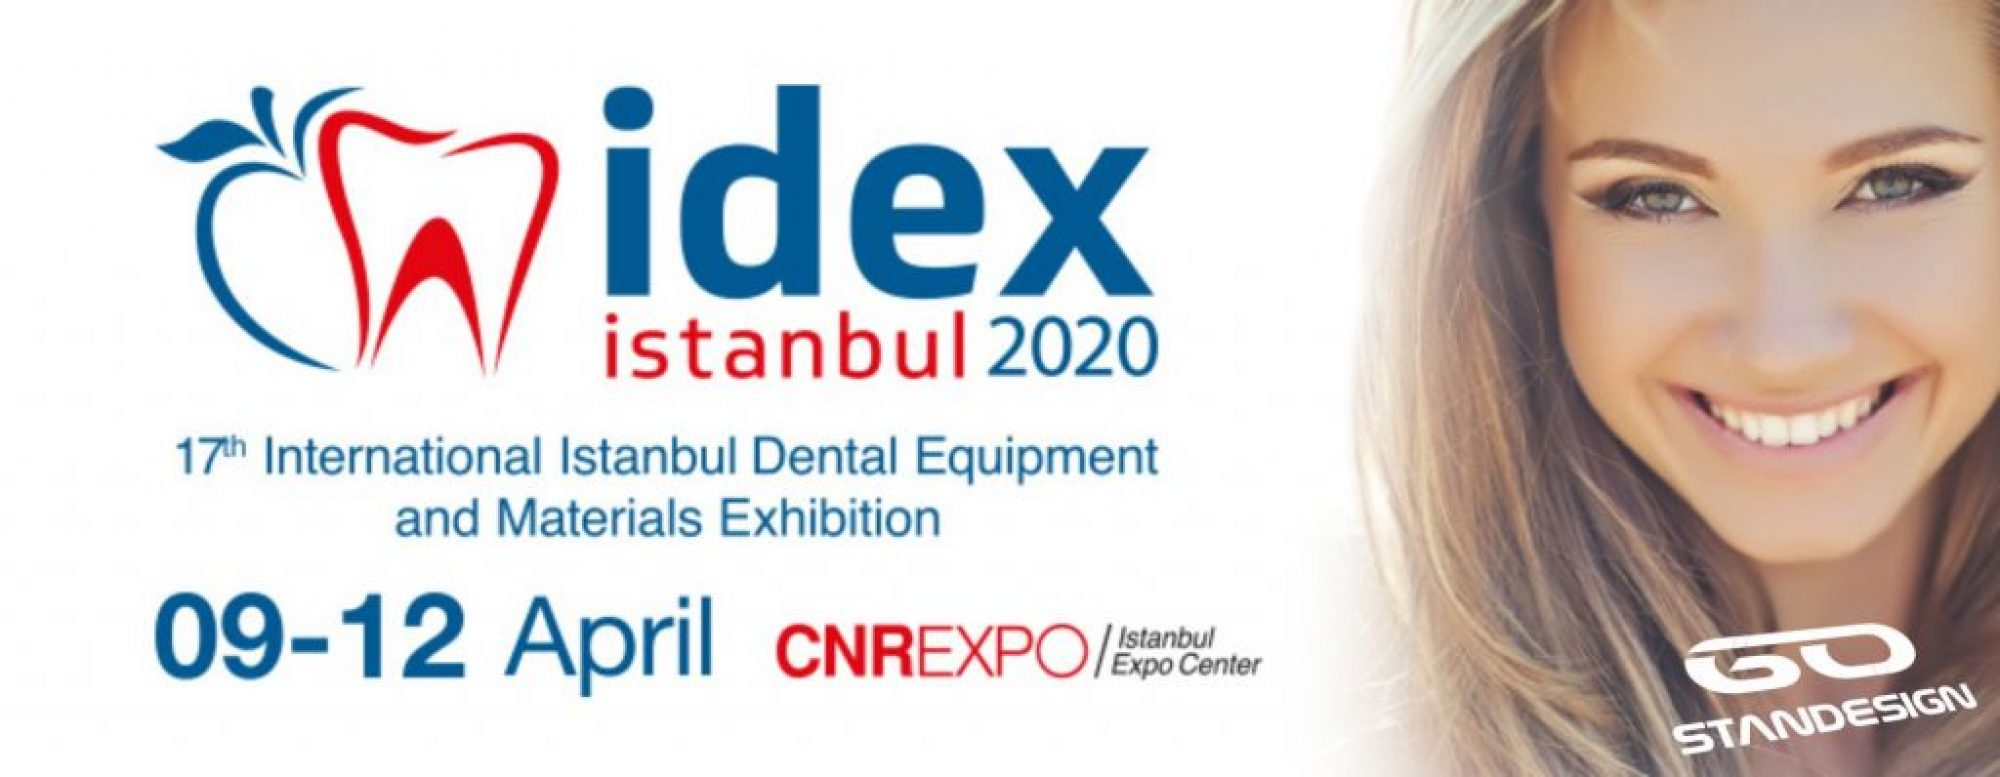 Trade Fair IDEX Istanbul 2020 Dental Equipment and Materials Exhibition Turkey